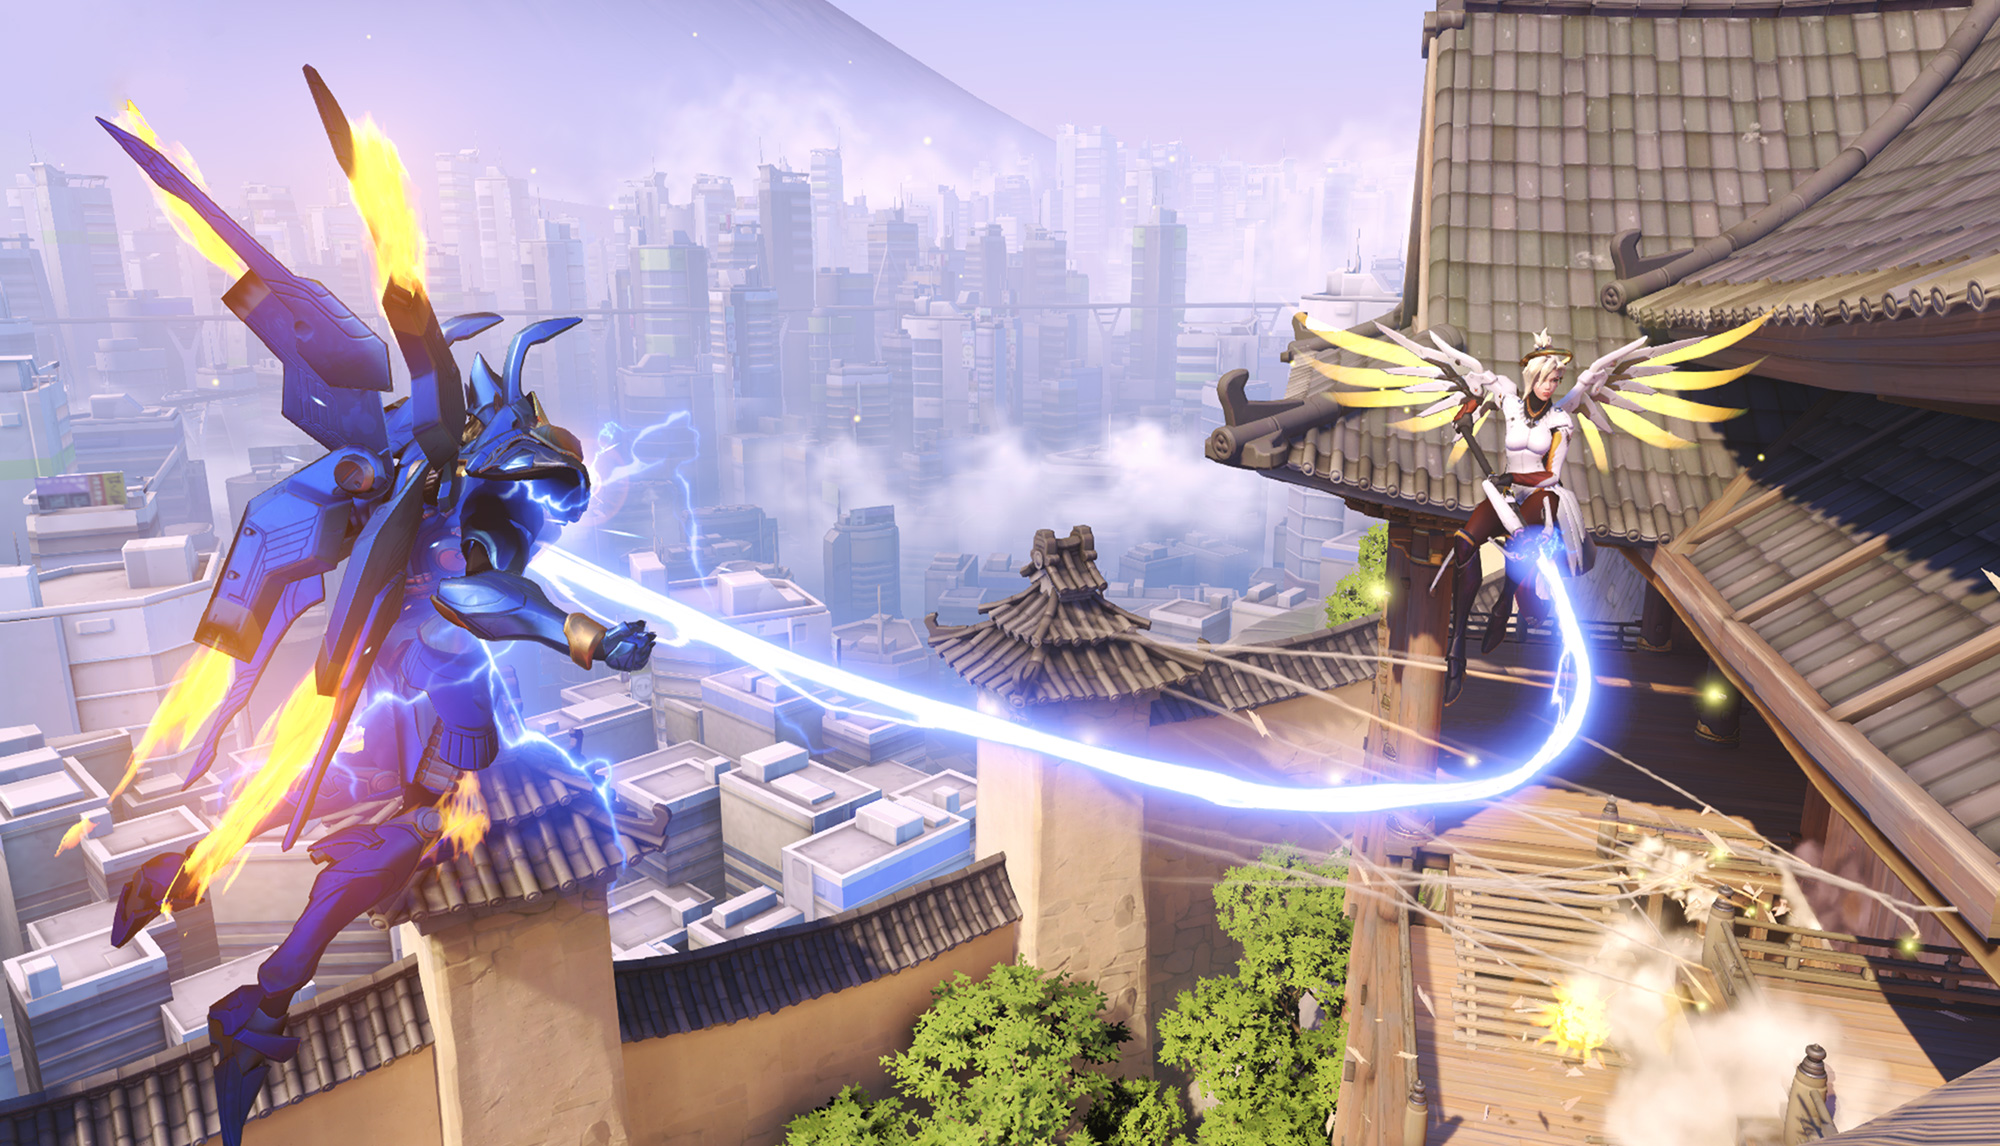 Blizzard Announces Overwatch: Project Titan Becomes